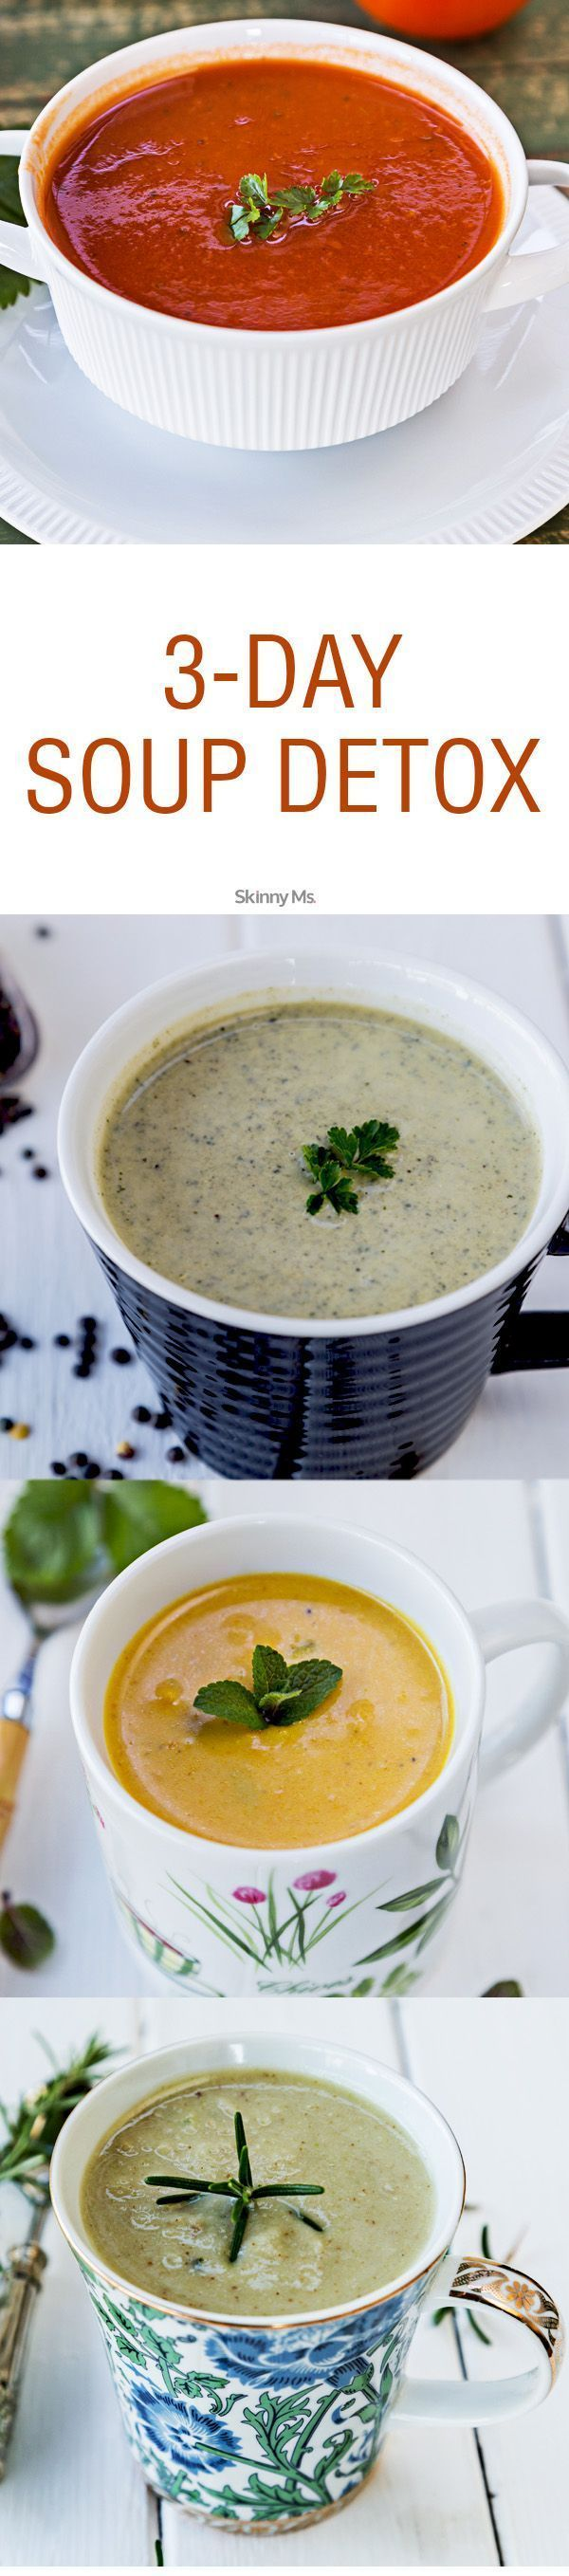 Join us for this 3 Day Soup Detox - a cleanse & detox that will leave you feeling satiated!  #ultimatedetox